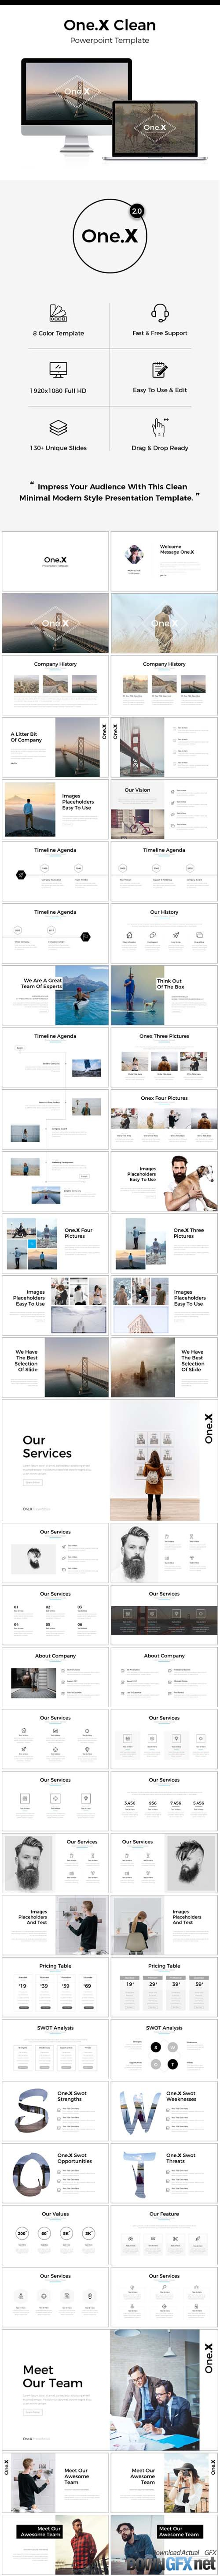 One.X 2.0 Clean Powerpoint Template 20059021